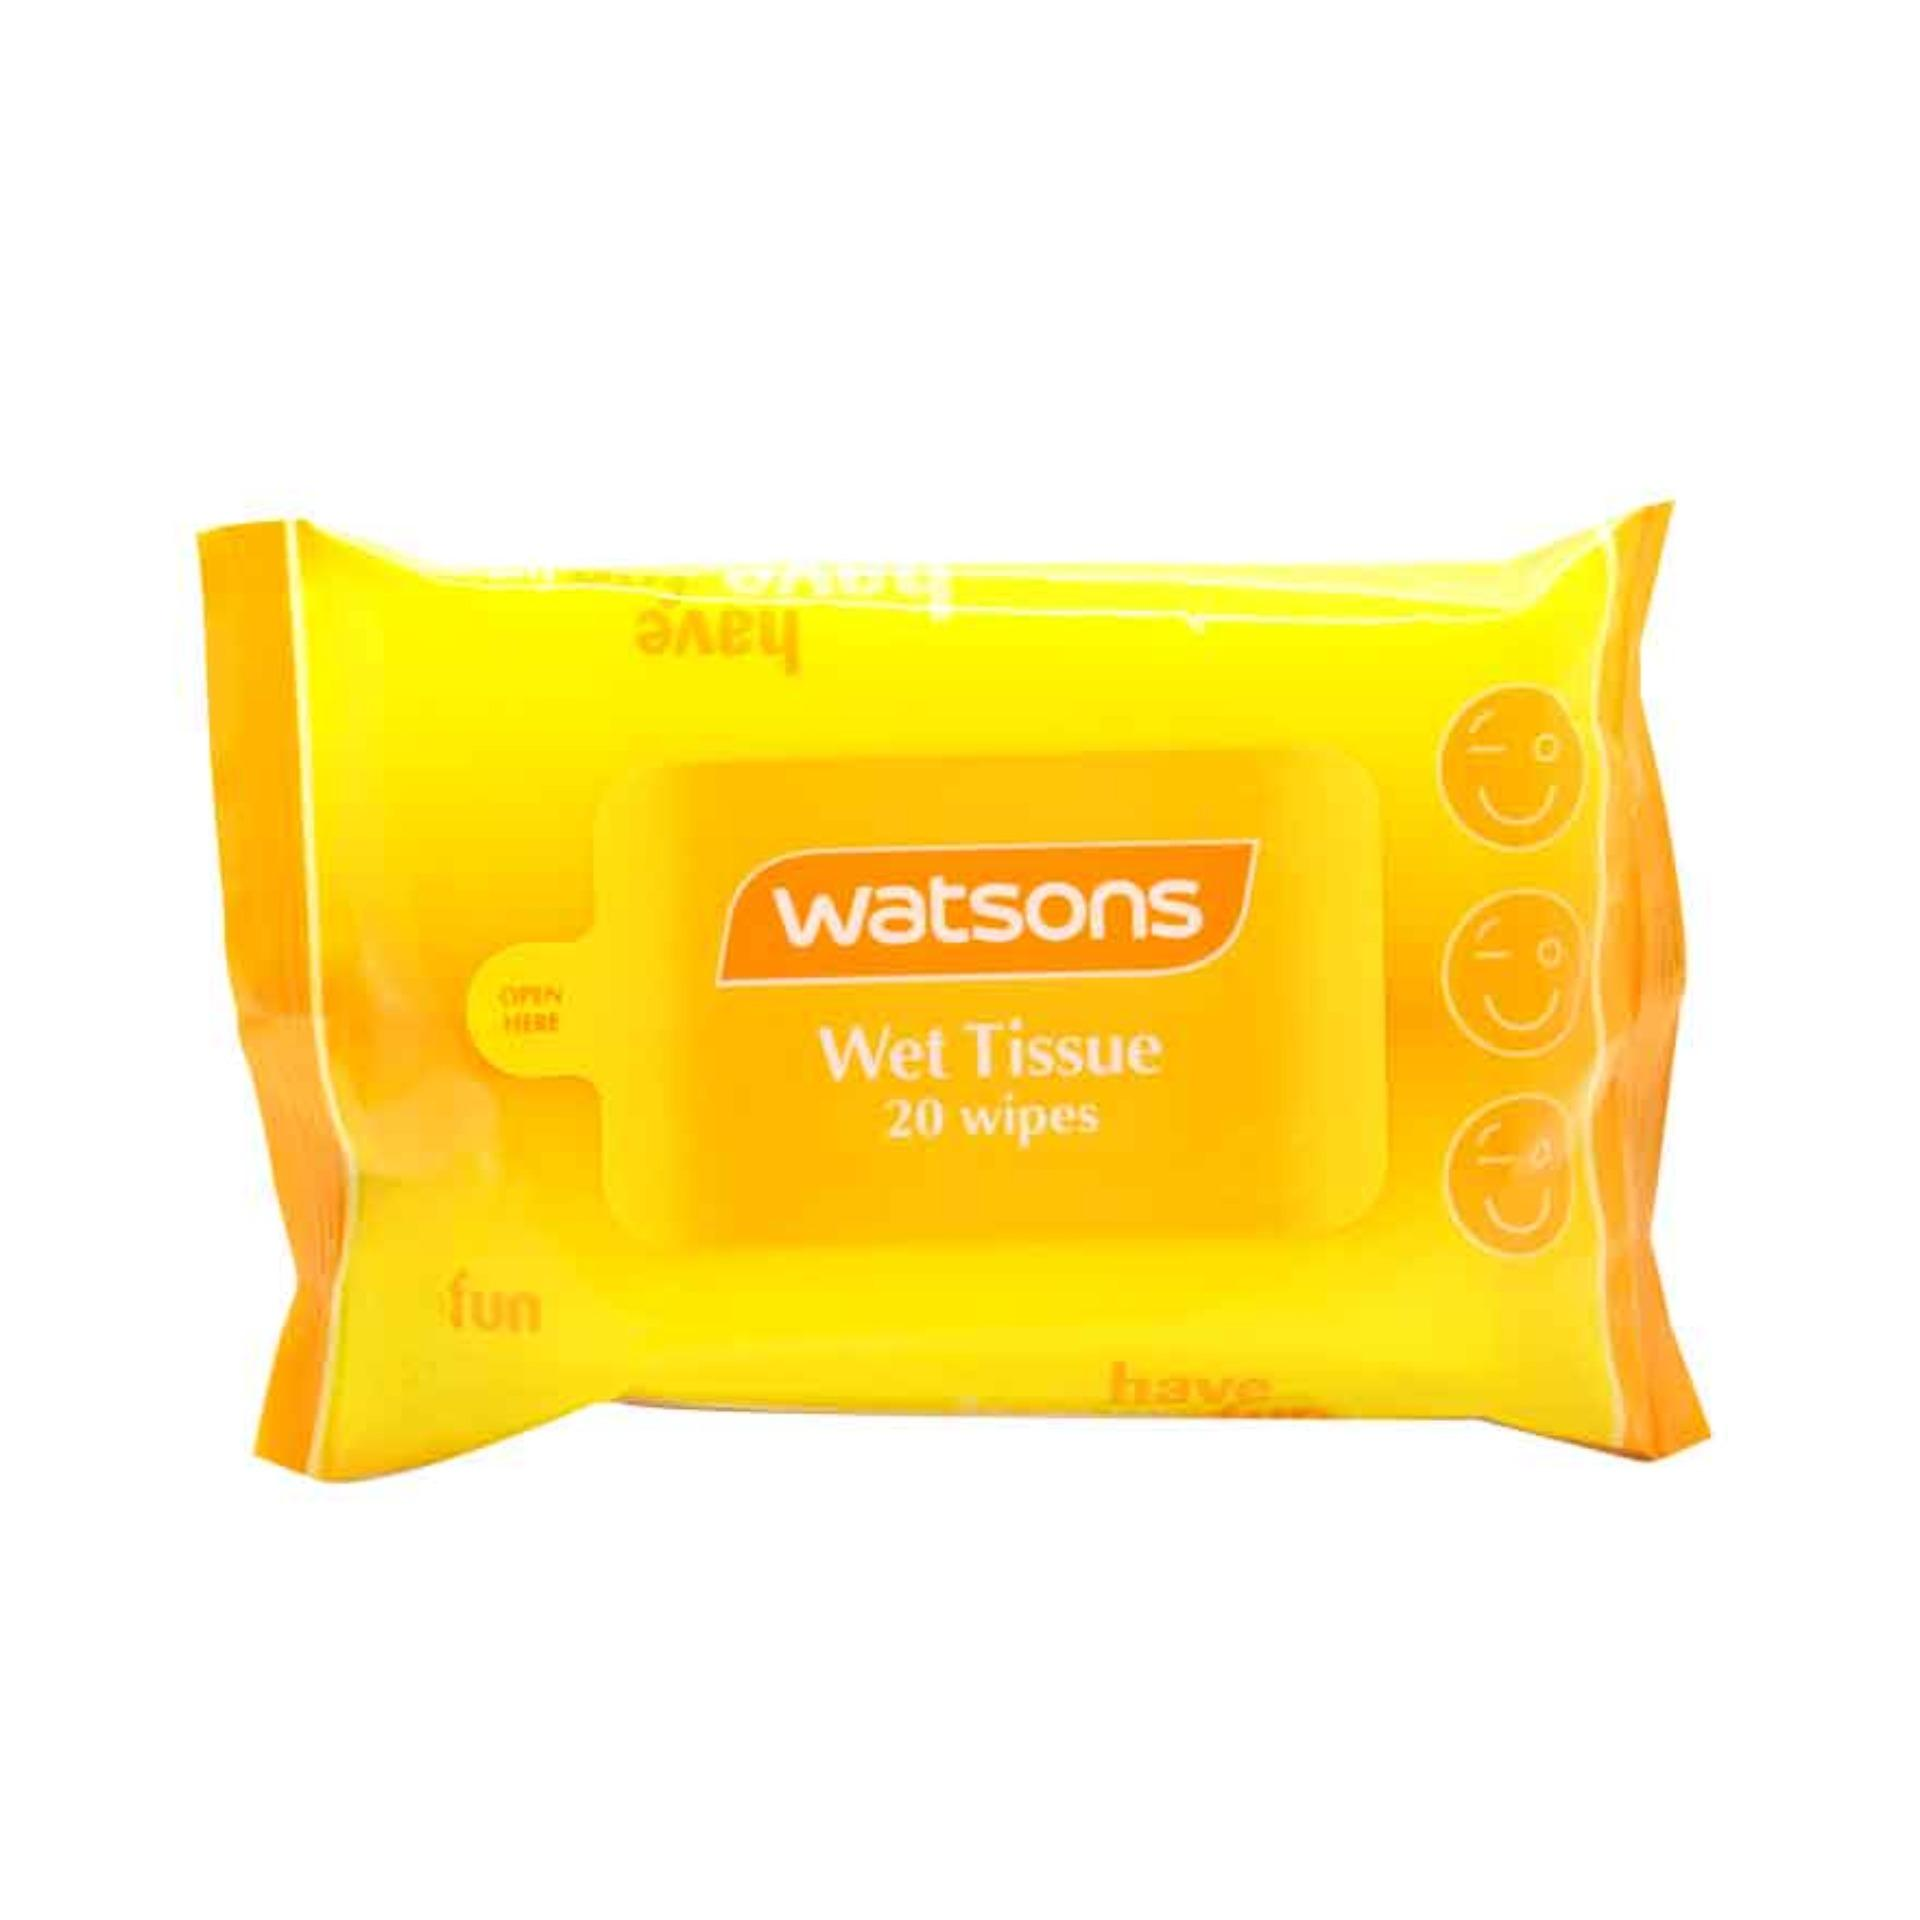 Watsons Wet Wipes Have Fun 20 Wipes By Watsons Personal Care Stores.